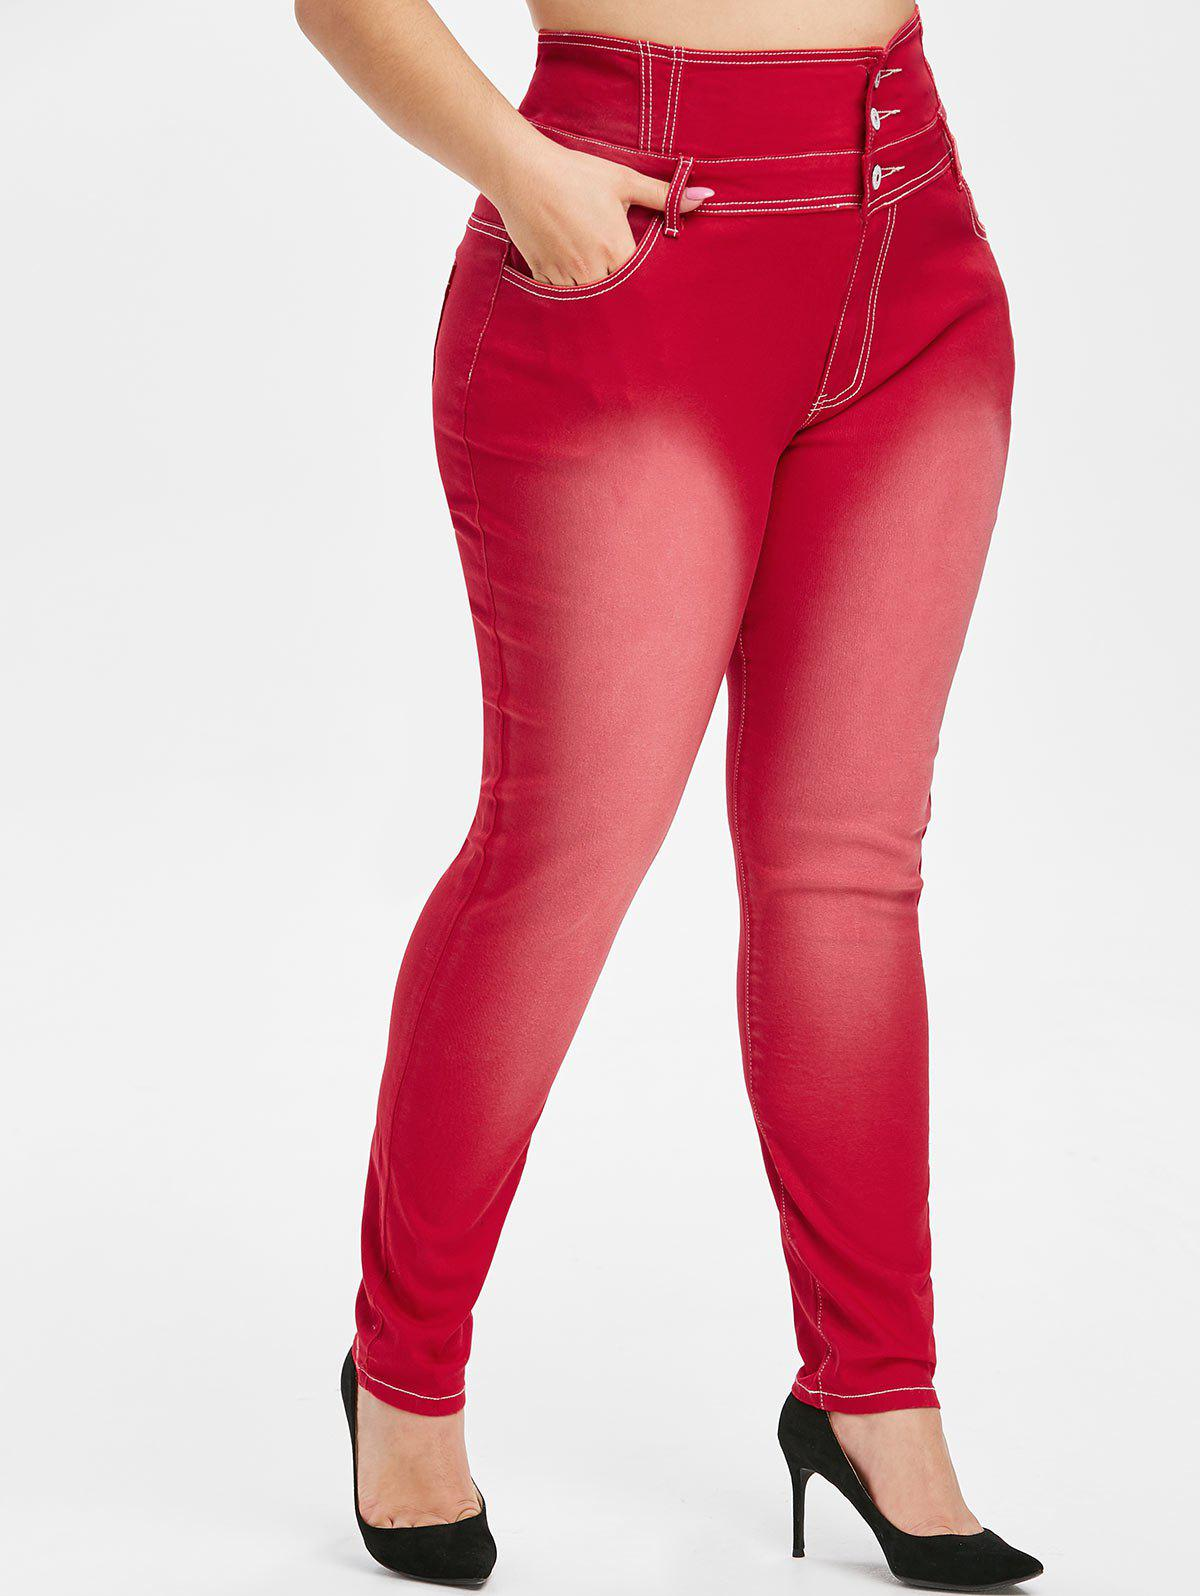 Plus Size Button Fly Faded Skinny Jeans - LAVA RED 5X